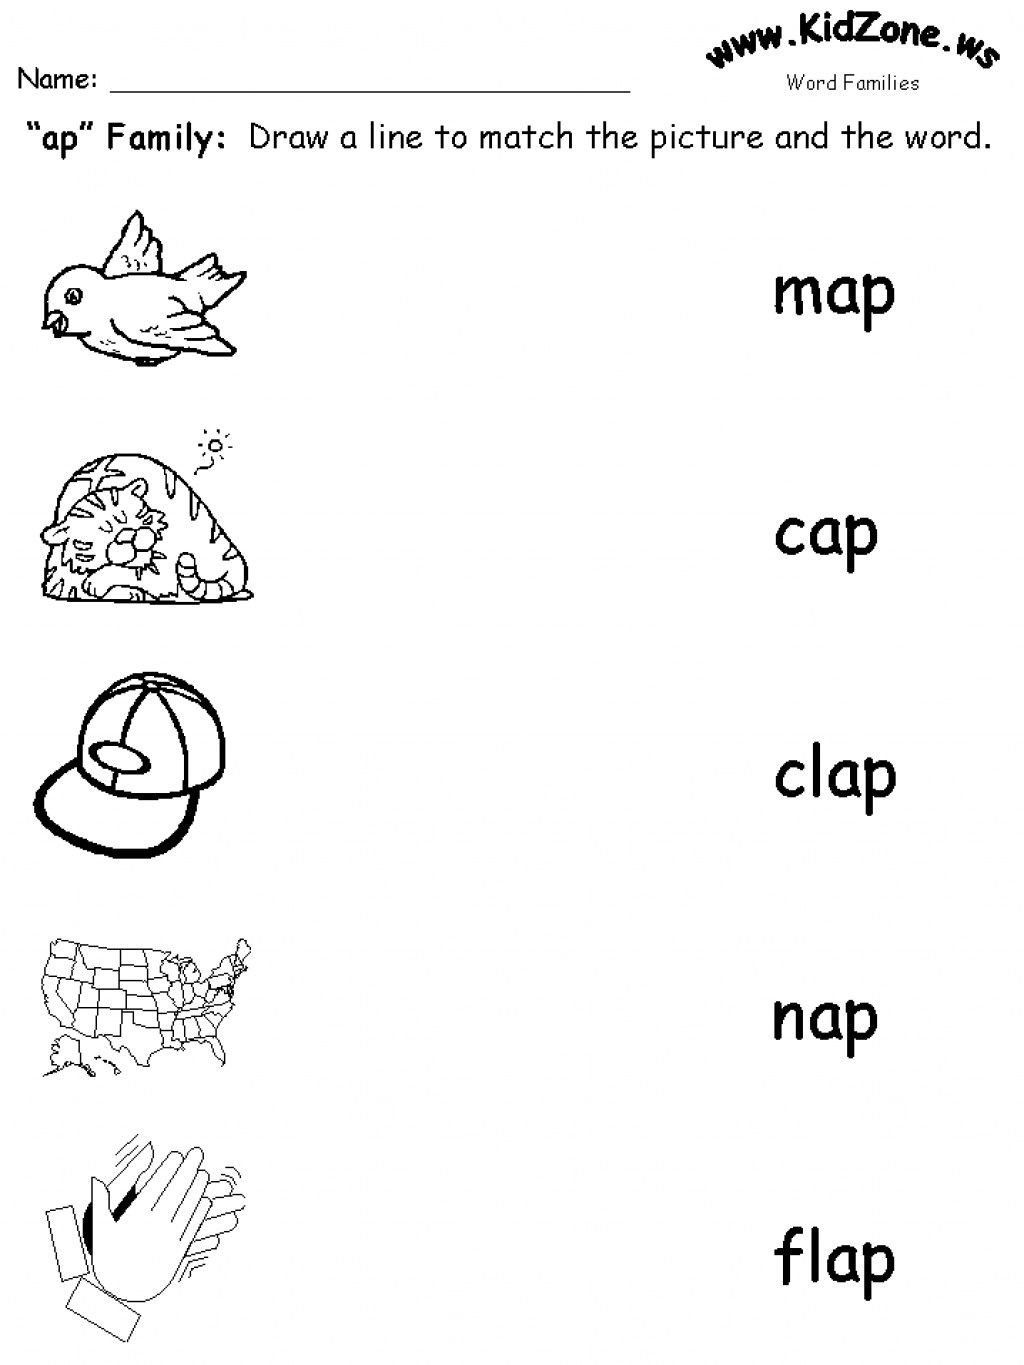 Word Families Kindergarten Worksheets Teaching Word Families In 2021 Word Family Worksheets Kindergarten Word Families Family Worksheet